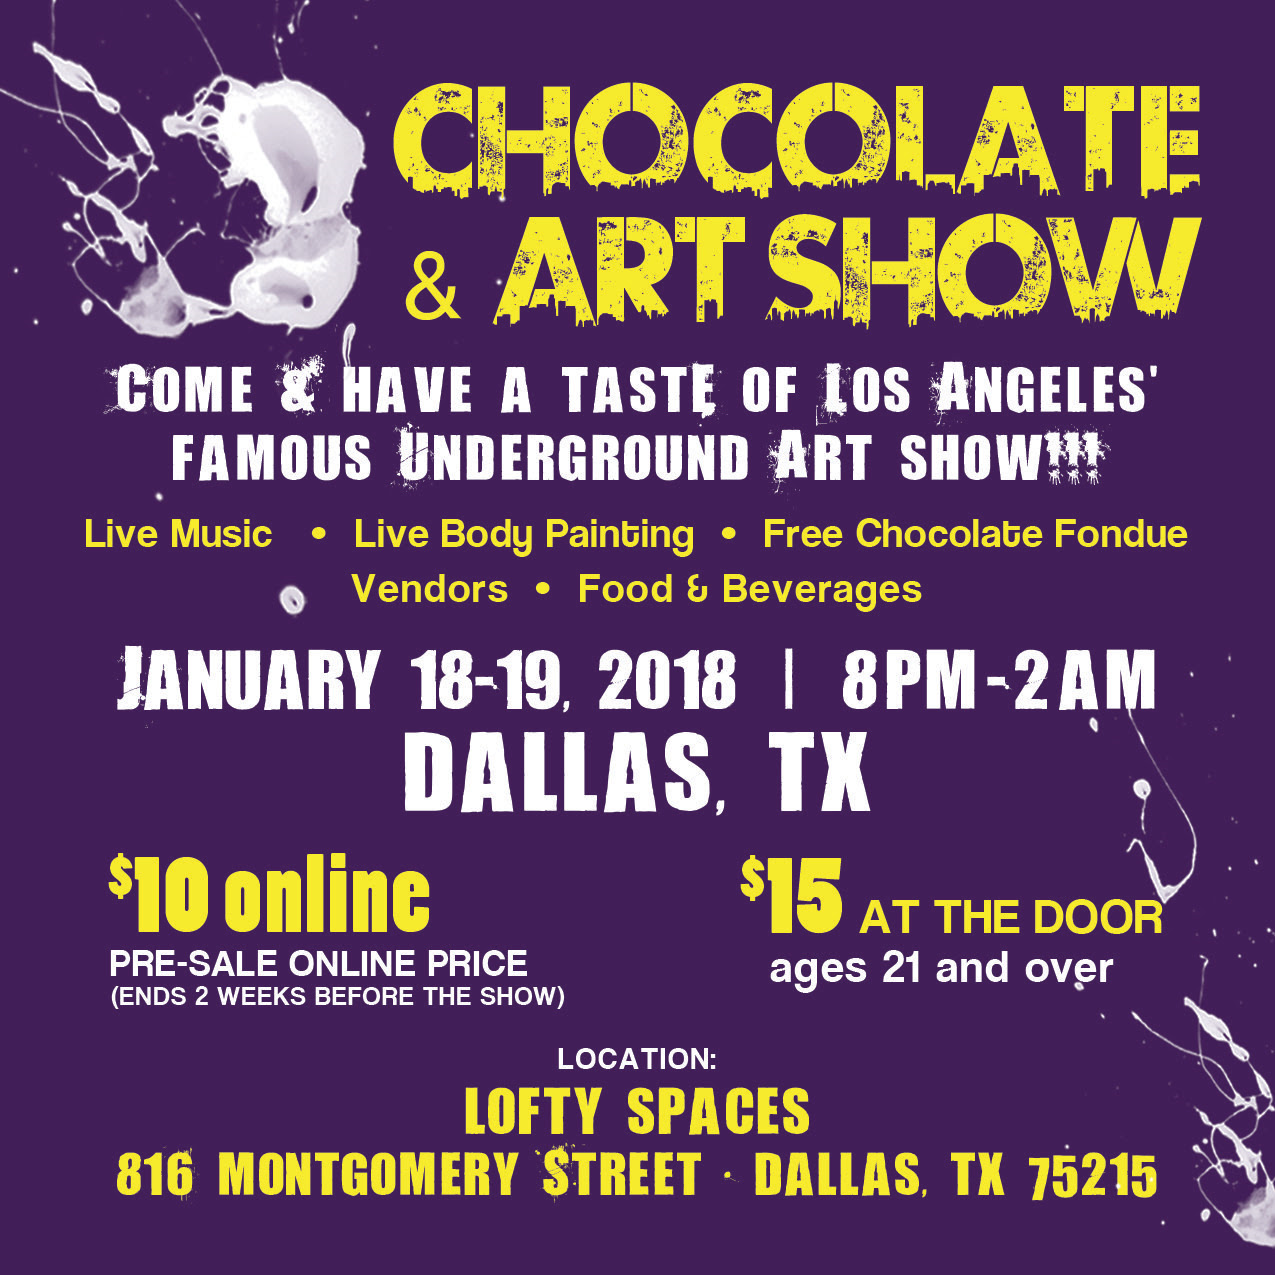 chocolate art show dallas featured image